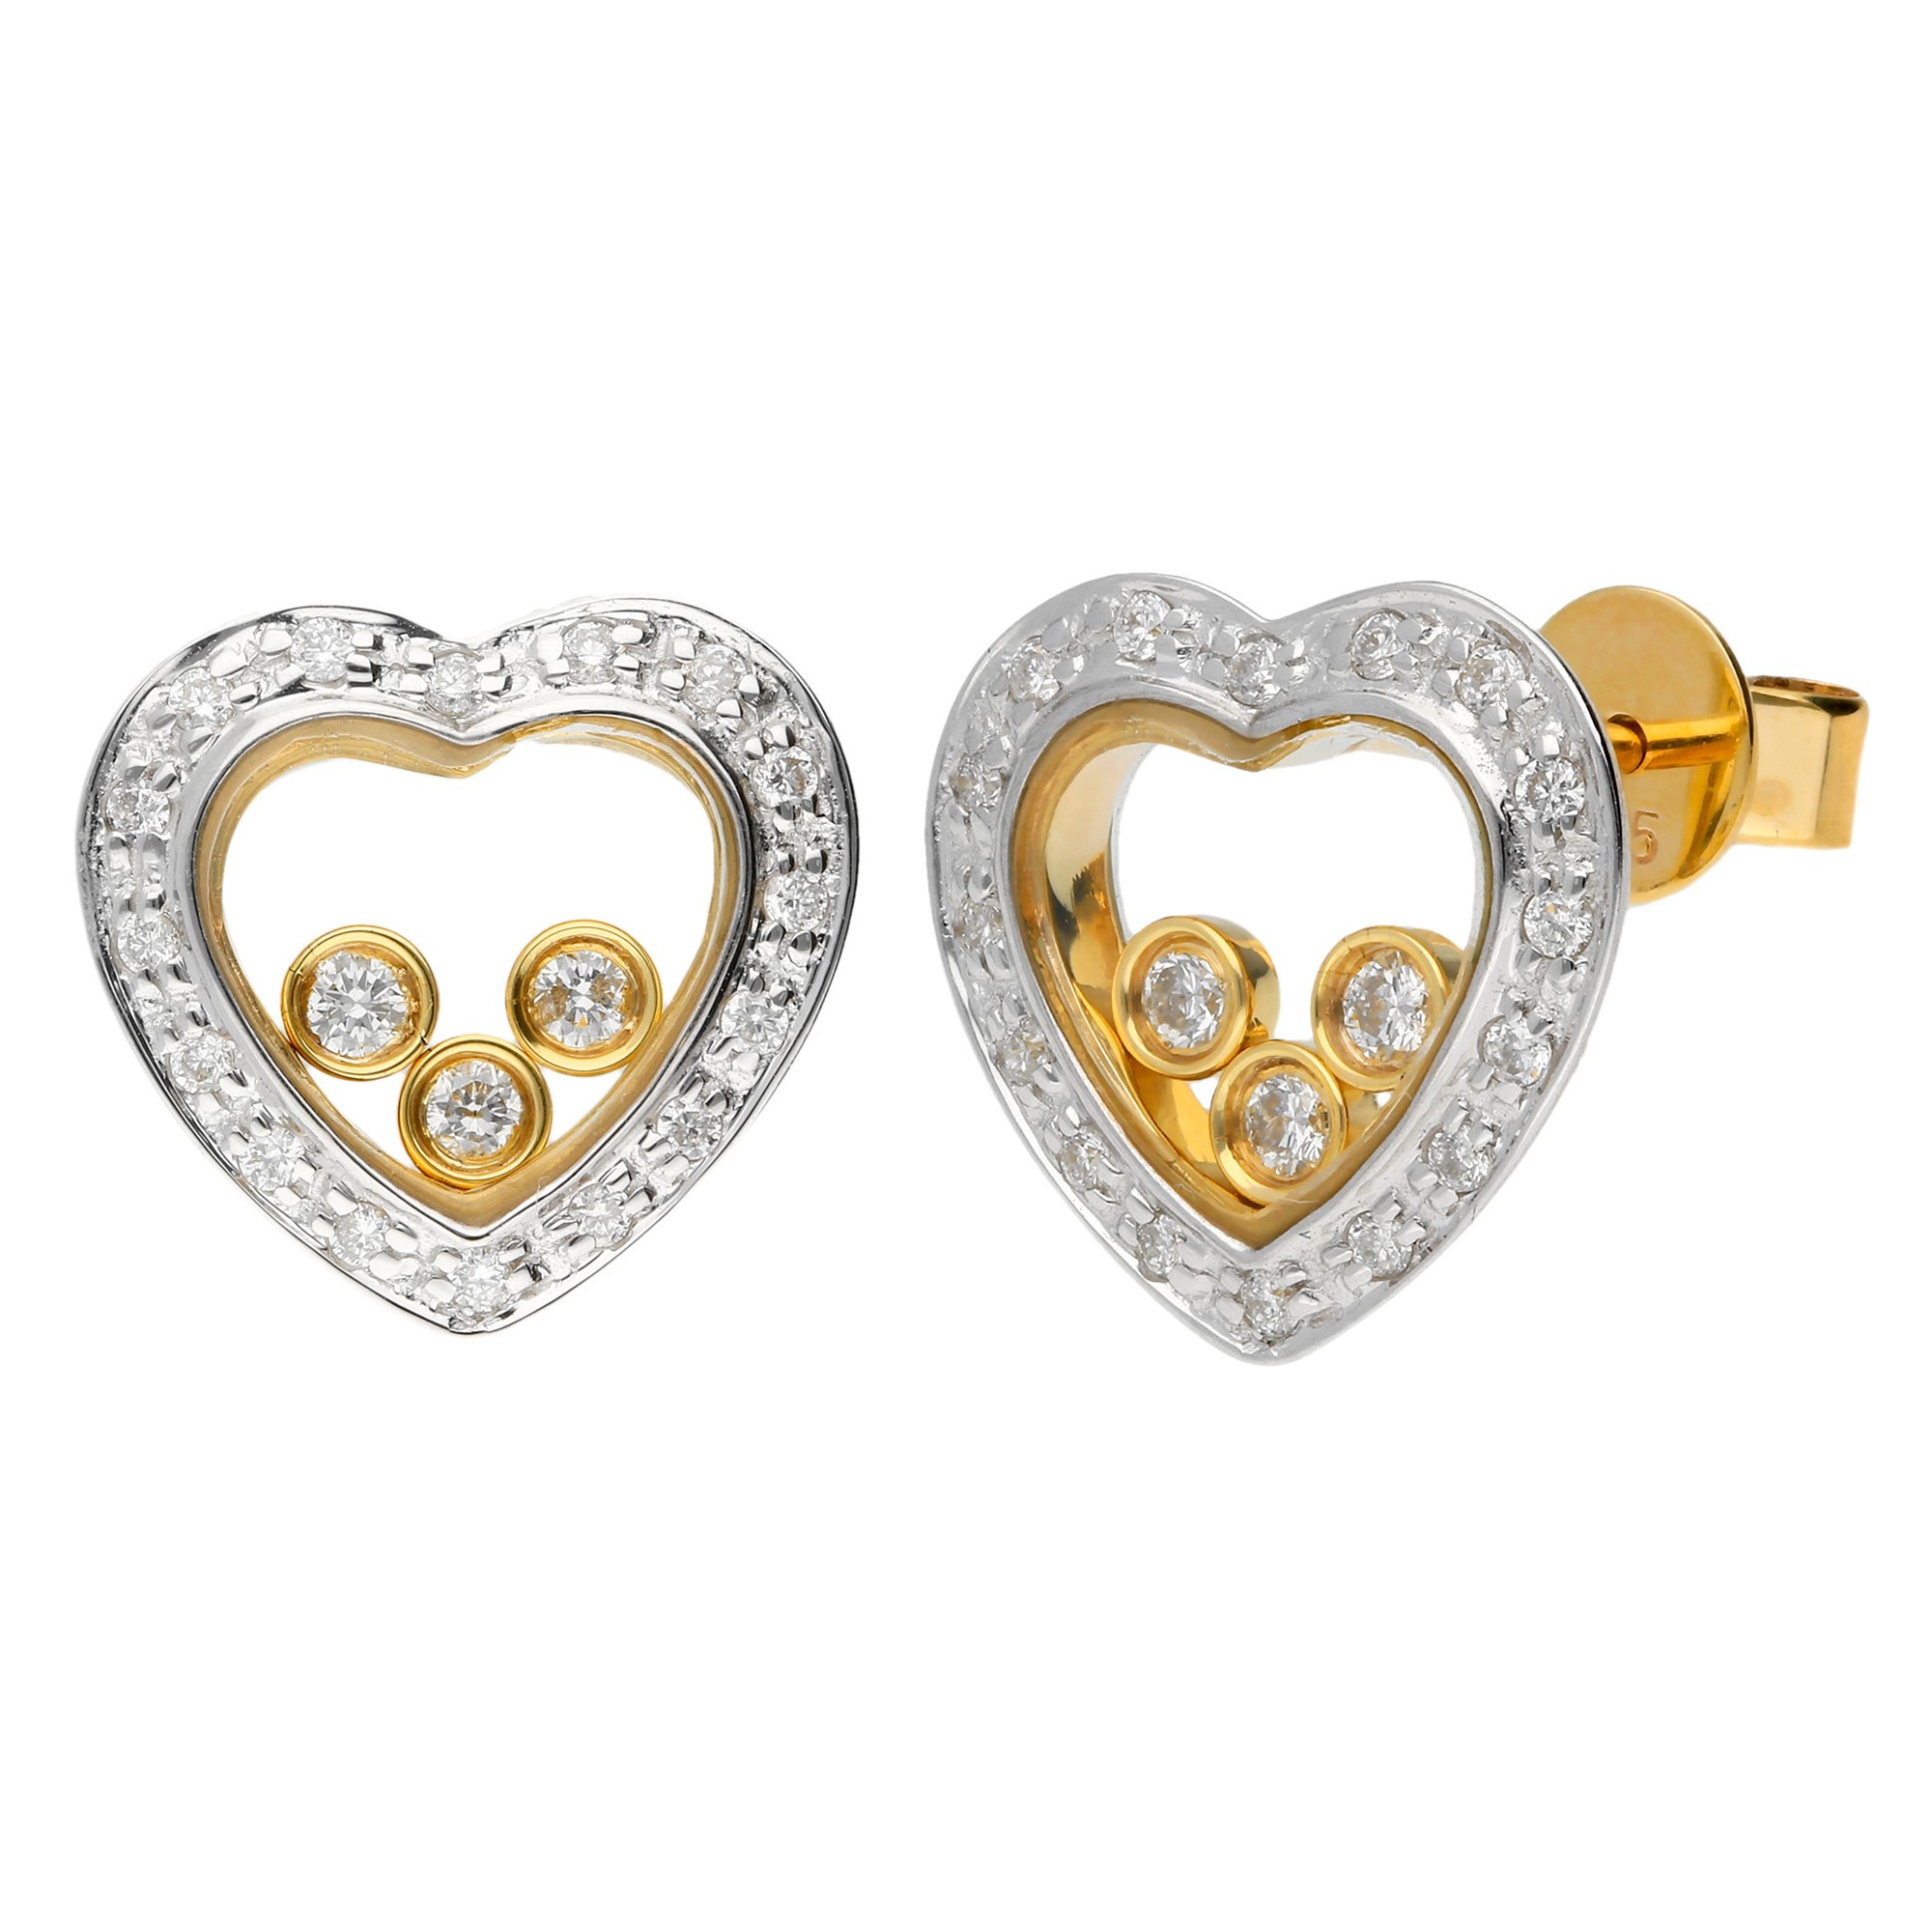 9ct Yellow White Gold Floating Diamond Heart Stud Earrings Buy Online Free And Fast Uk Insured Delivery